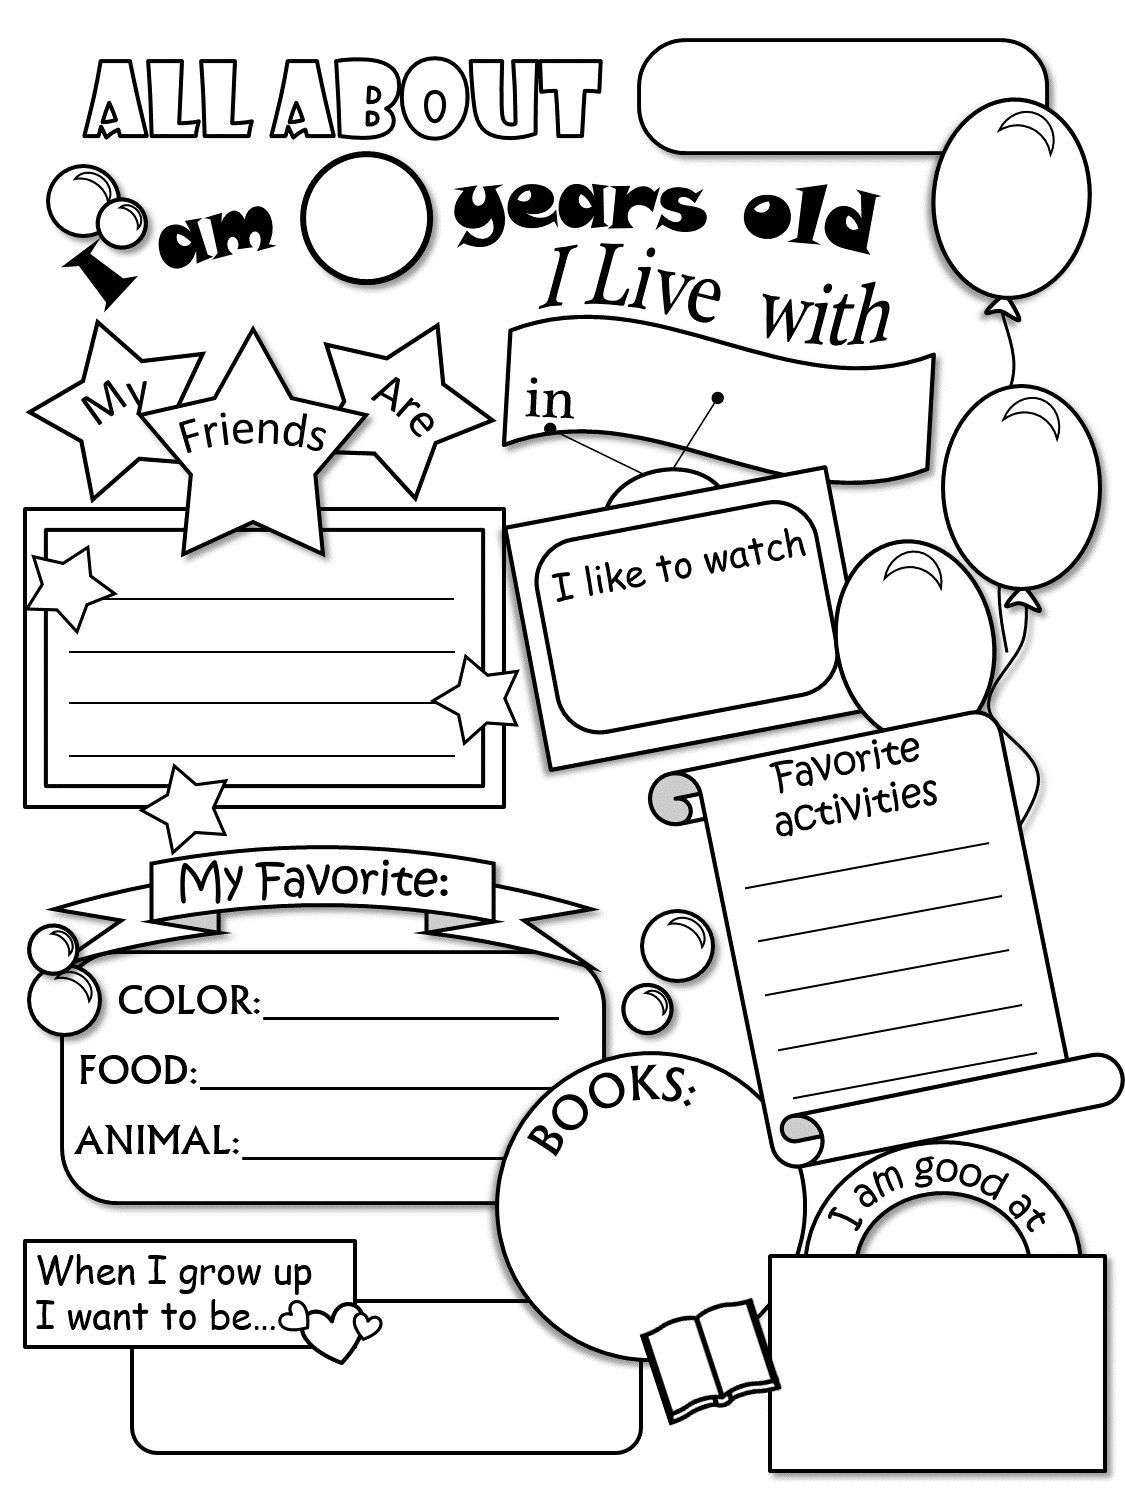 All About Me Worksheet Freebie Cute All About Me Worksheet School Activities Worksheets For Kids